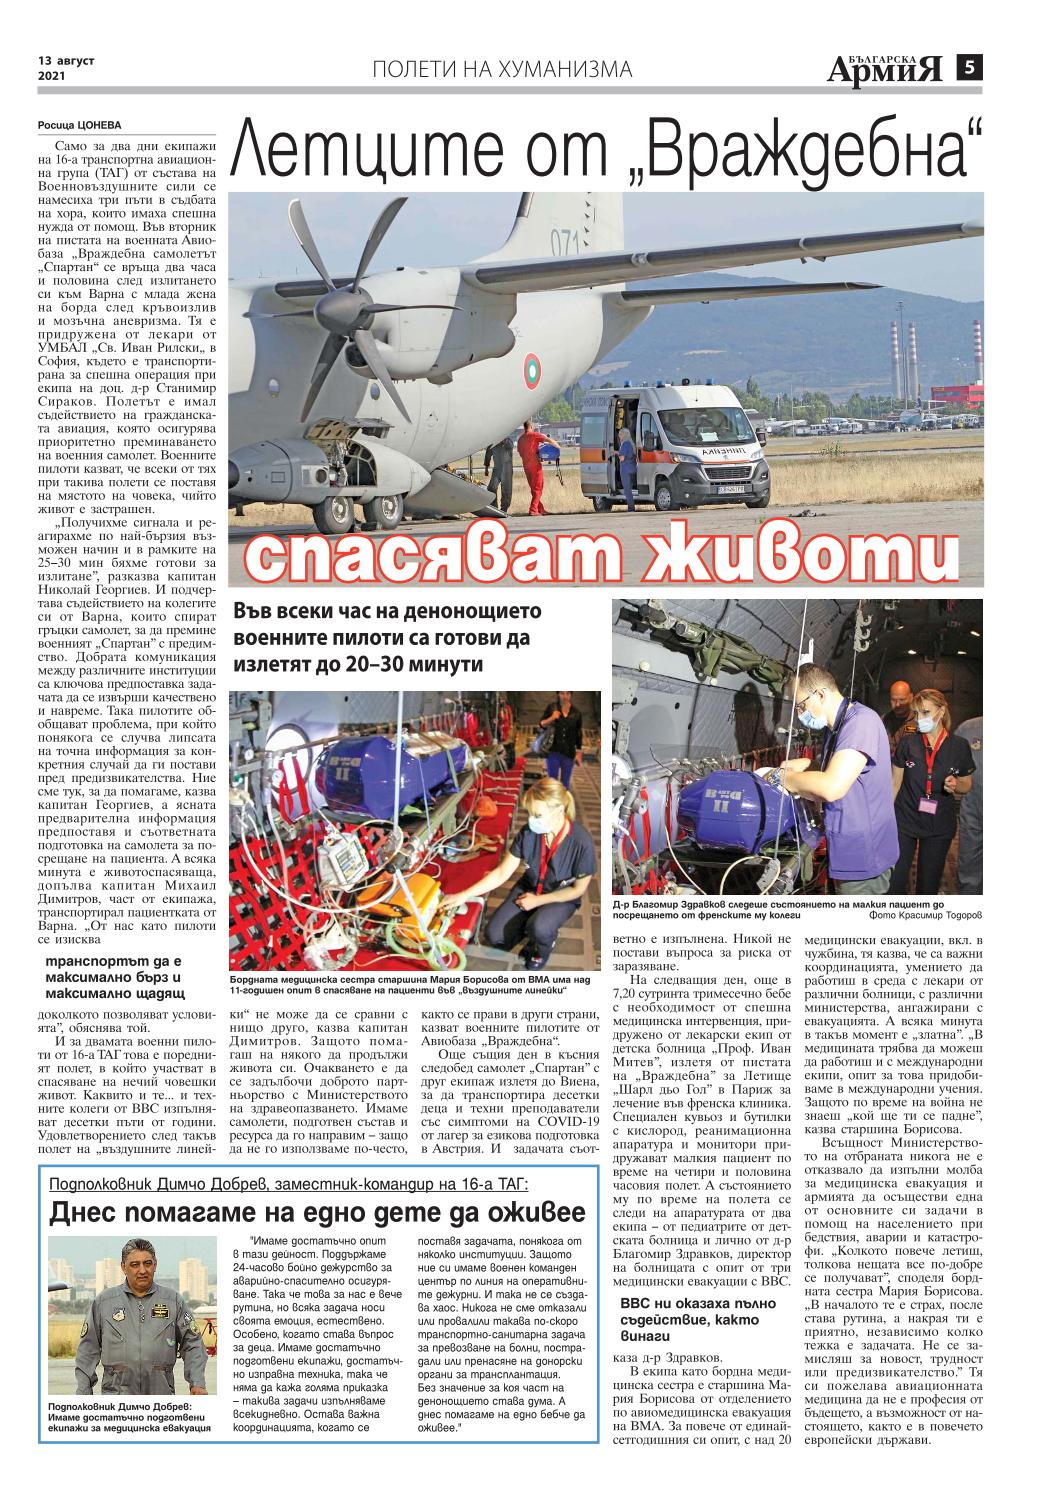 https://armymedia.bg/wp-content/uploads/2021/08/05.page1_-1.jpg